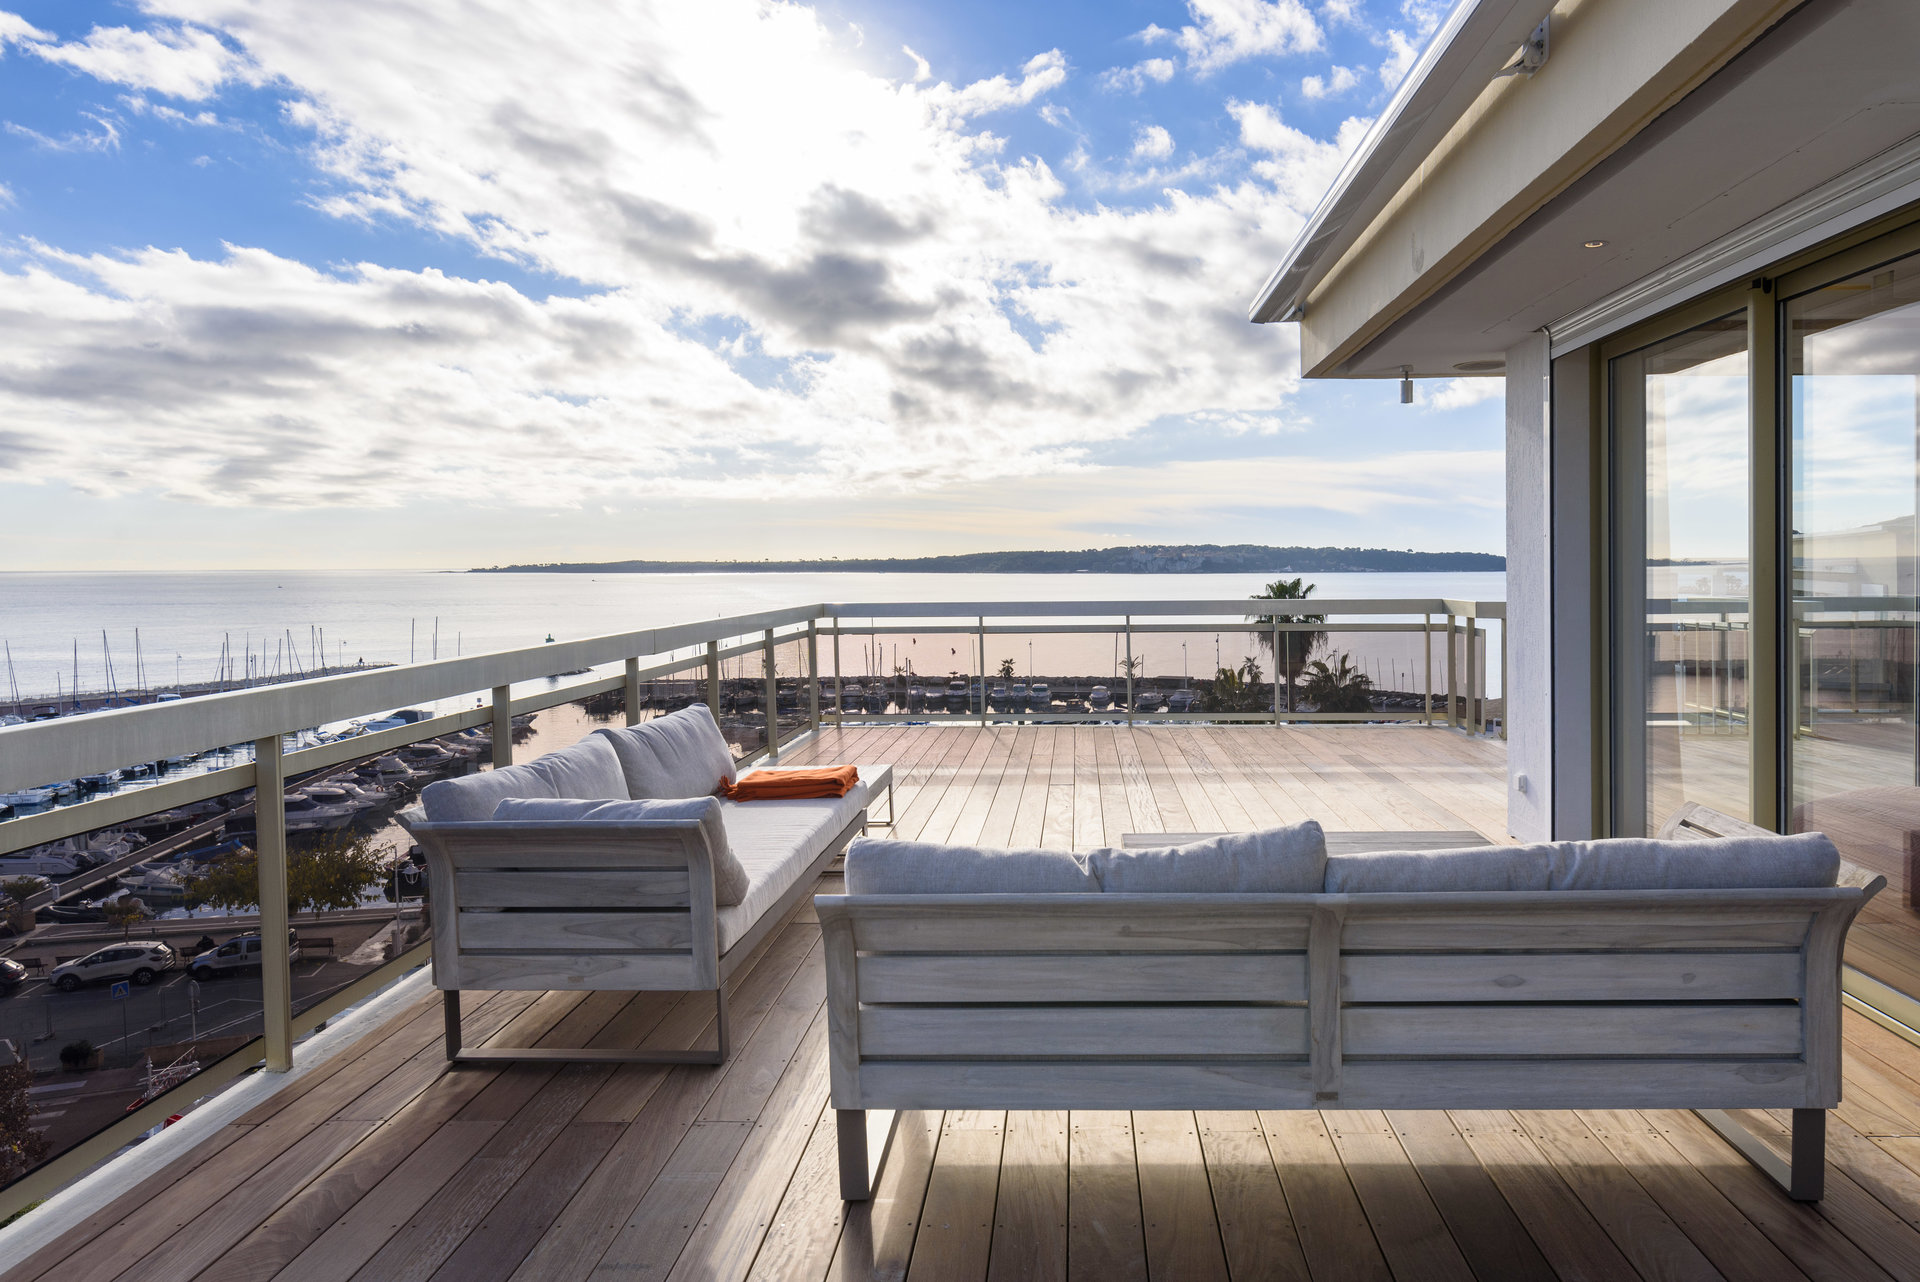 PENTHOUSE WITH TERRACE 151sq.m PANORAMIC SEA VIEW